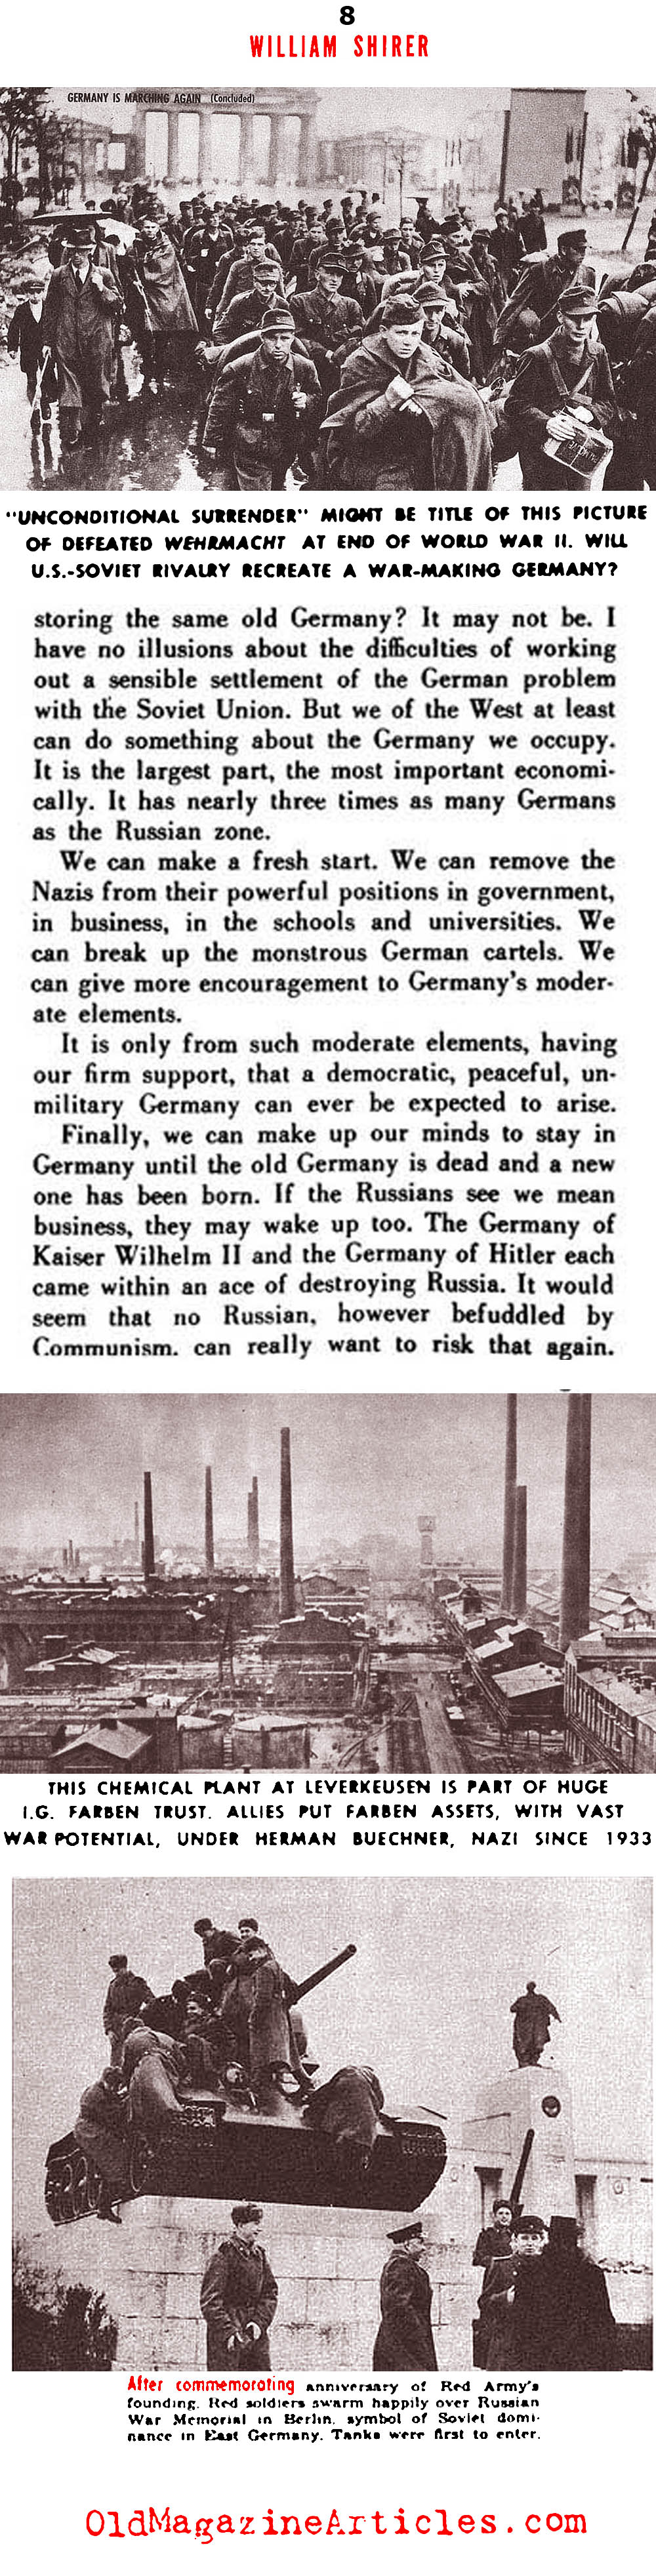 Germany, The Unrepentant (See Magazine, 1950)